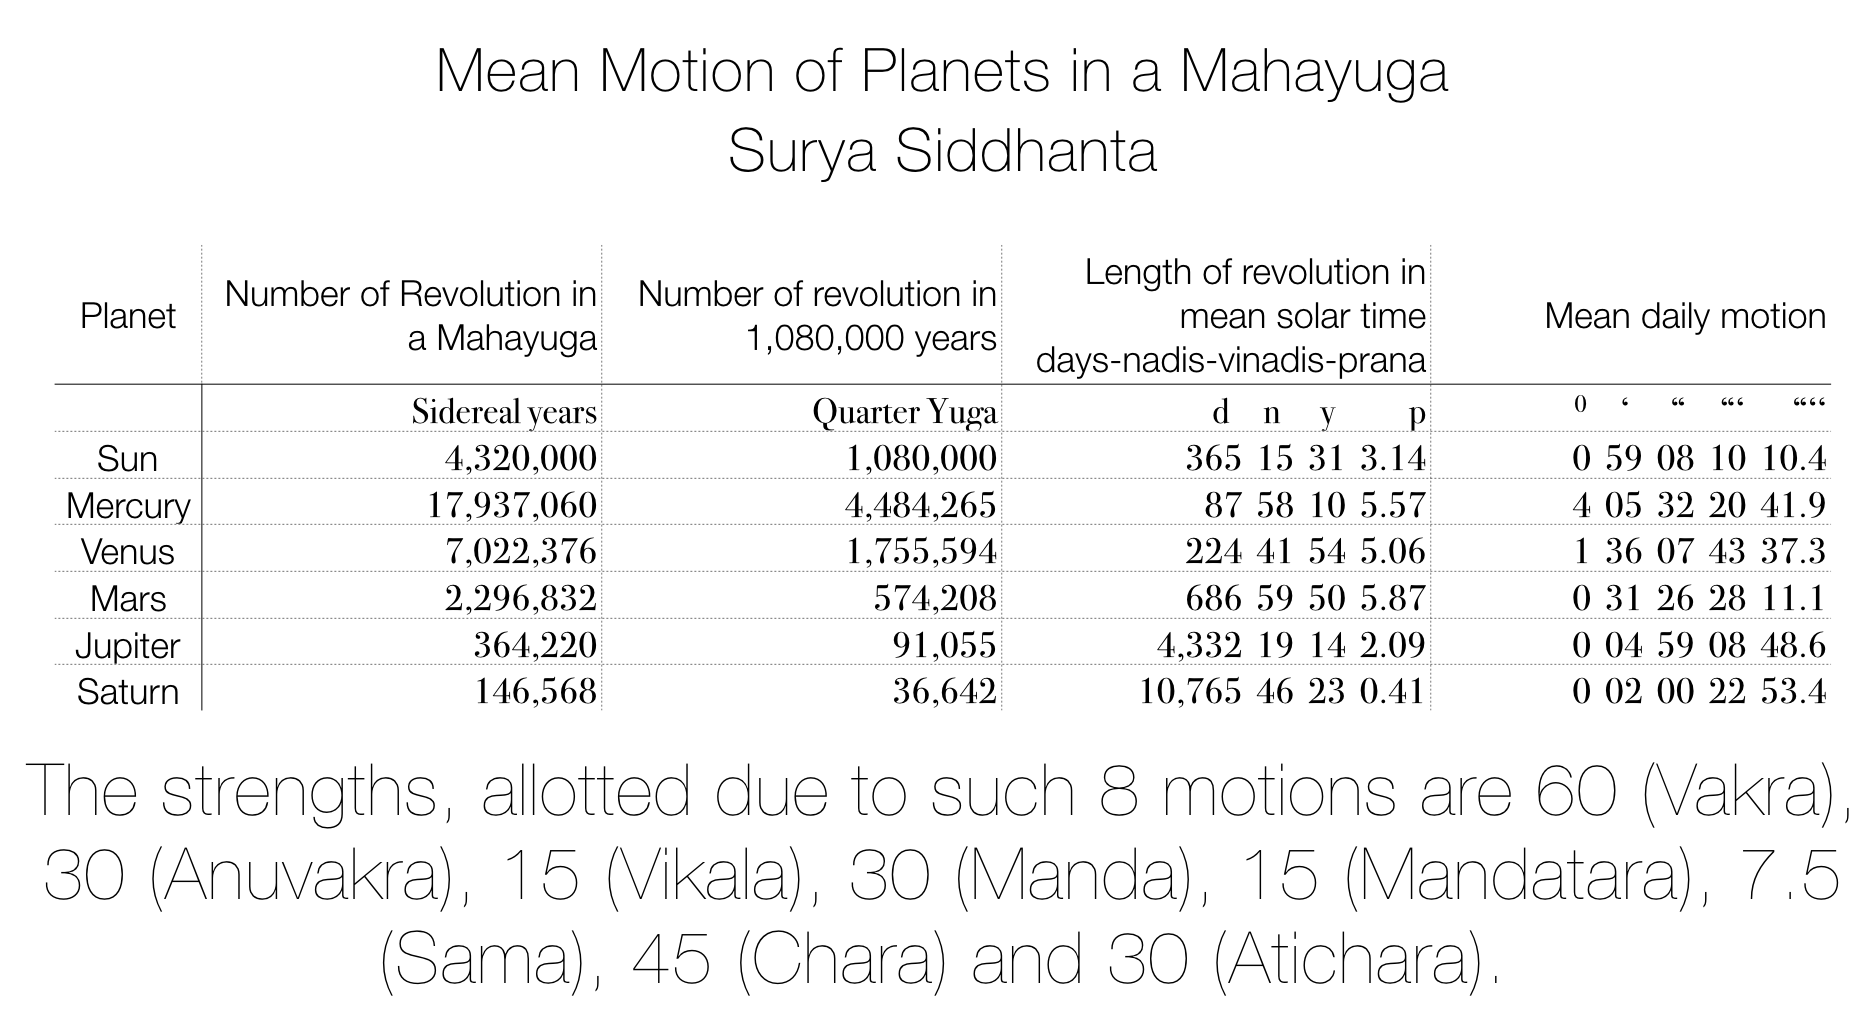 Shadbala: The 6 sources of strength - Thoughts on Jyotish